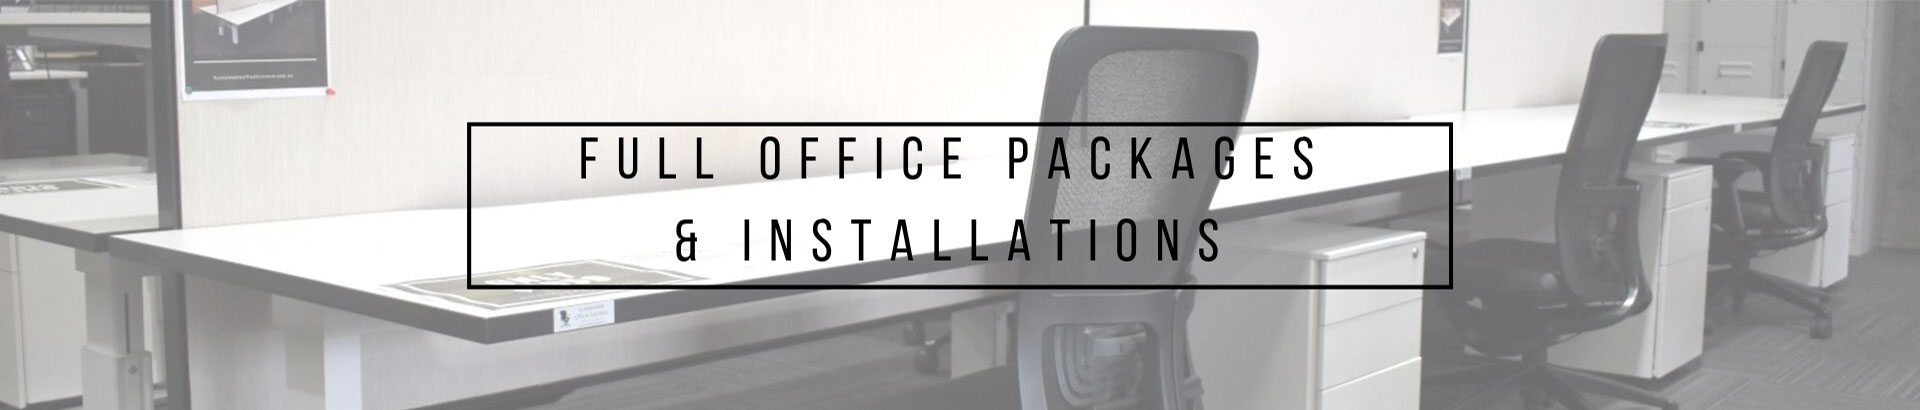 Full office packages and installations